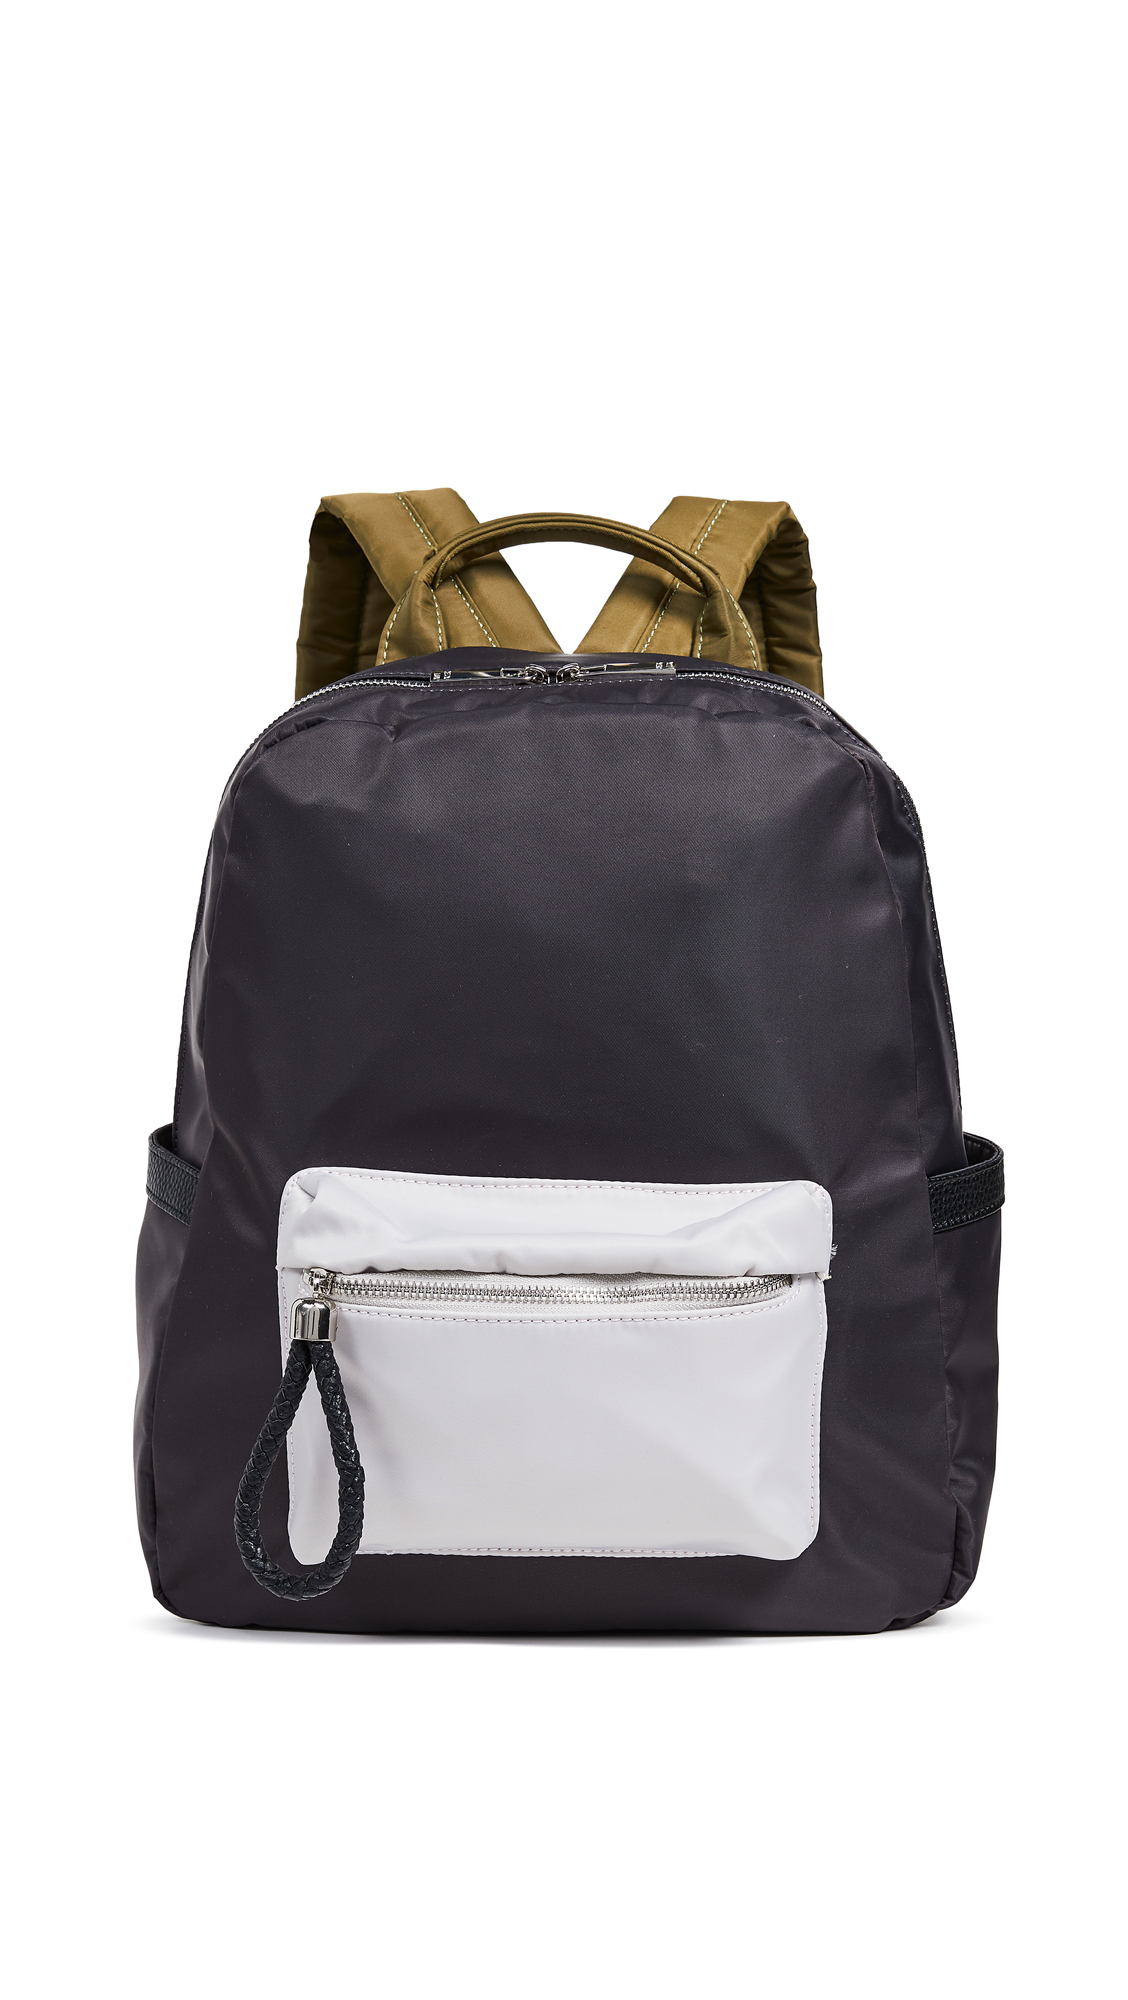 DEUX LUX X Shopbop Backpack in Grey Colorblock